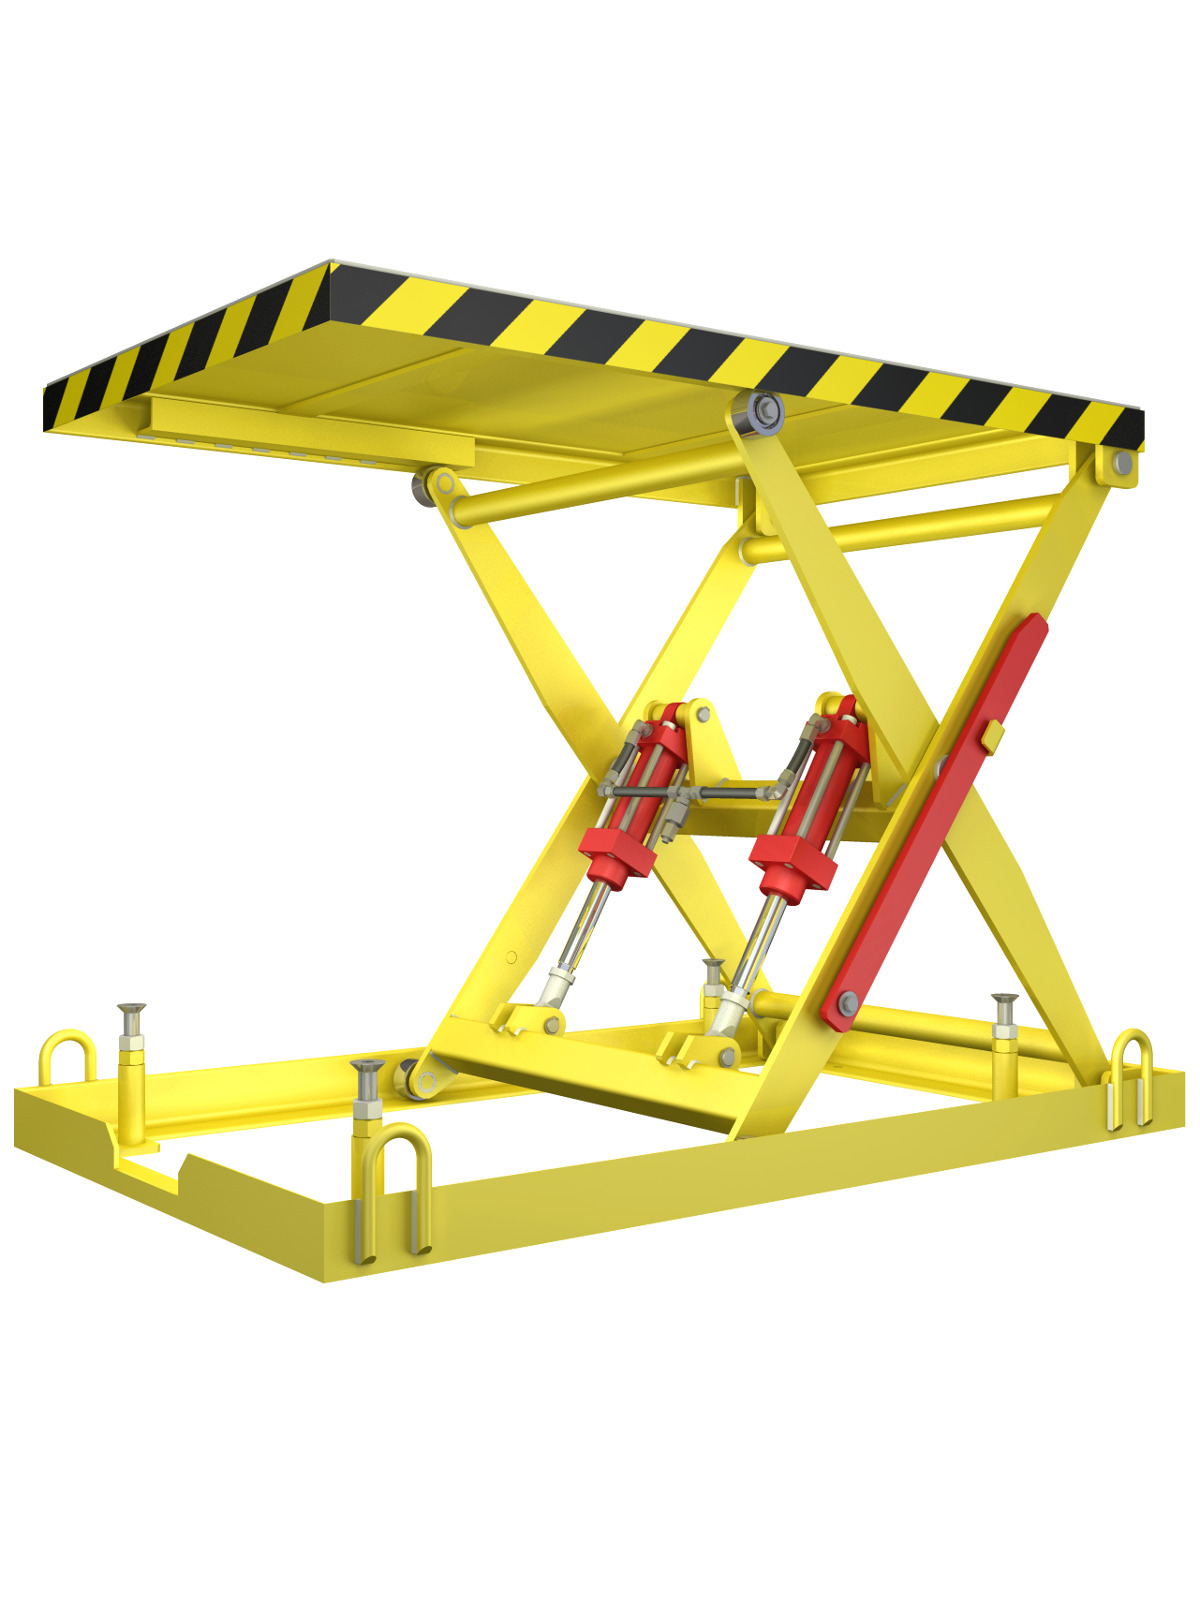 Hydraulic Scissor Lift design - Engineering CAD project with calculations